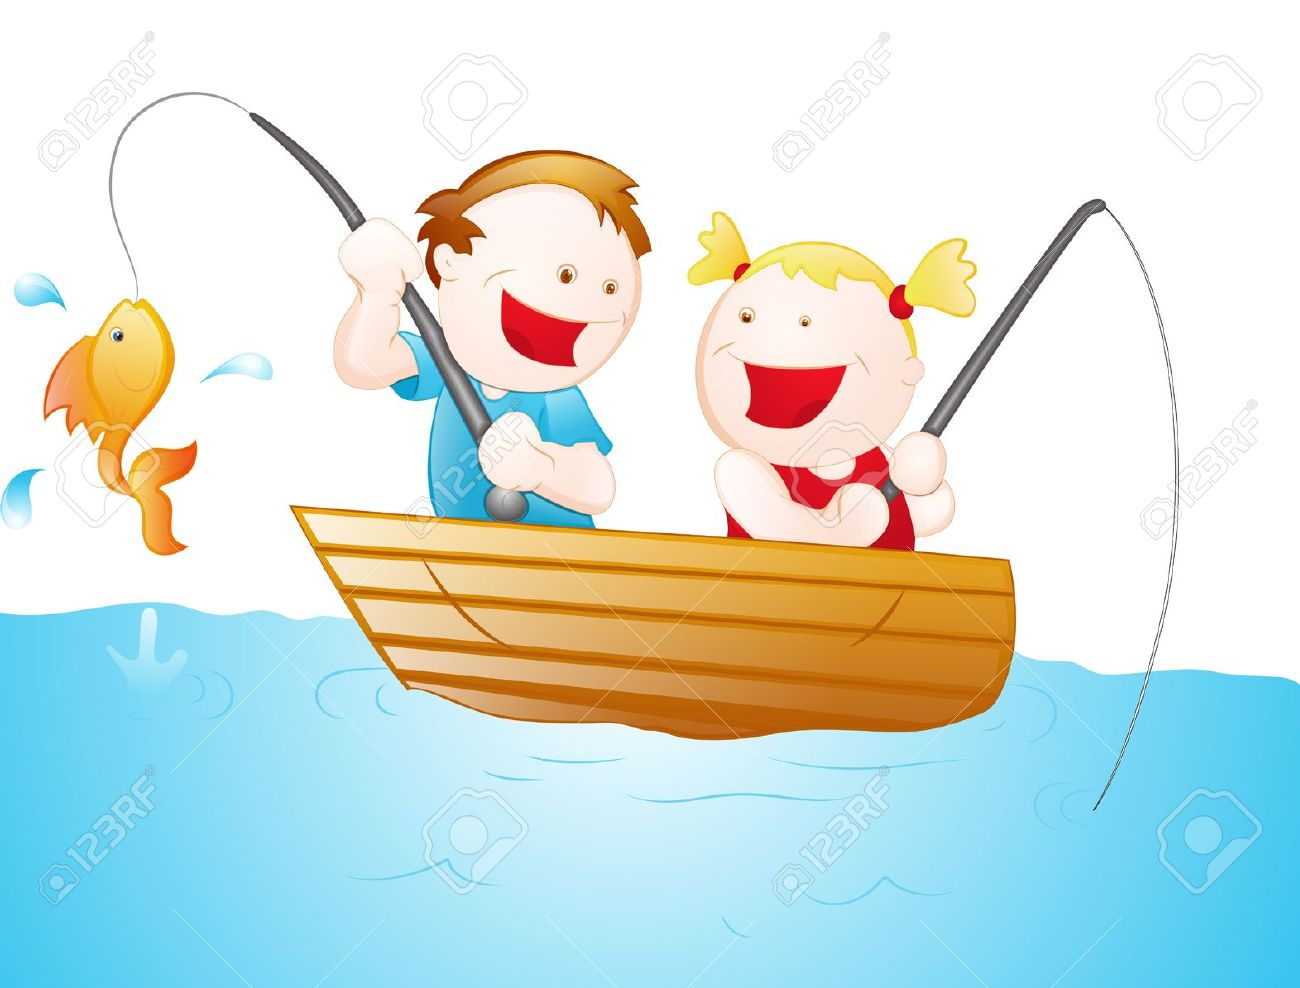 Kids fishing clipart 4 » Clipart Station.